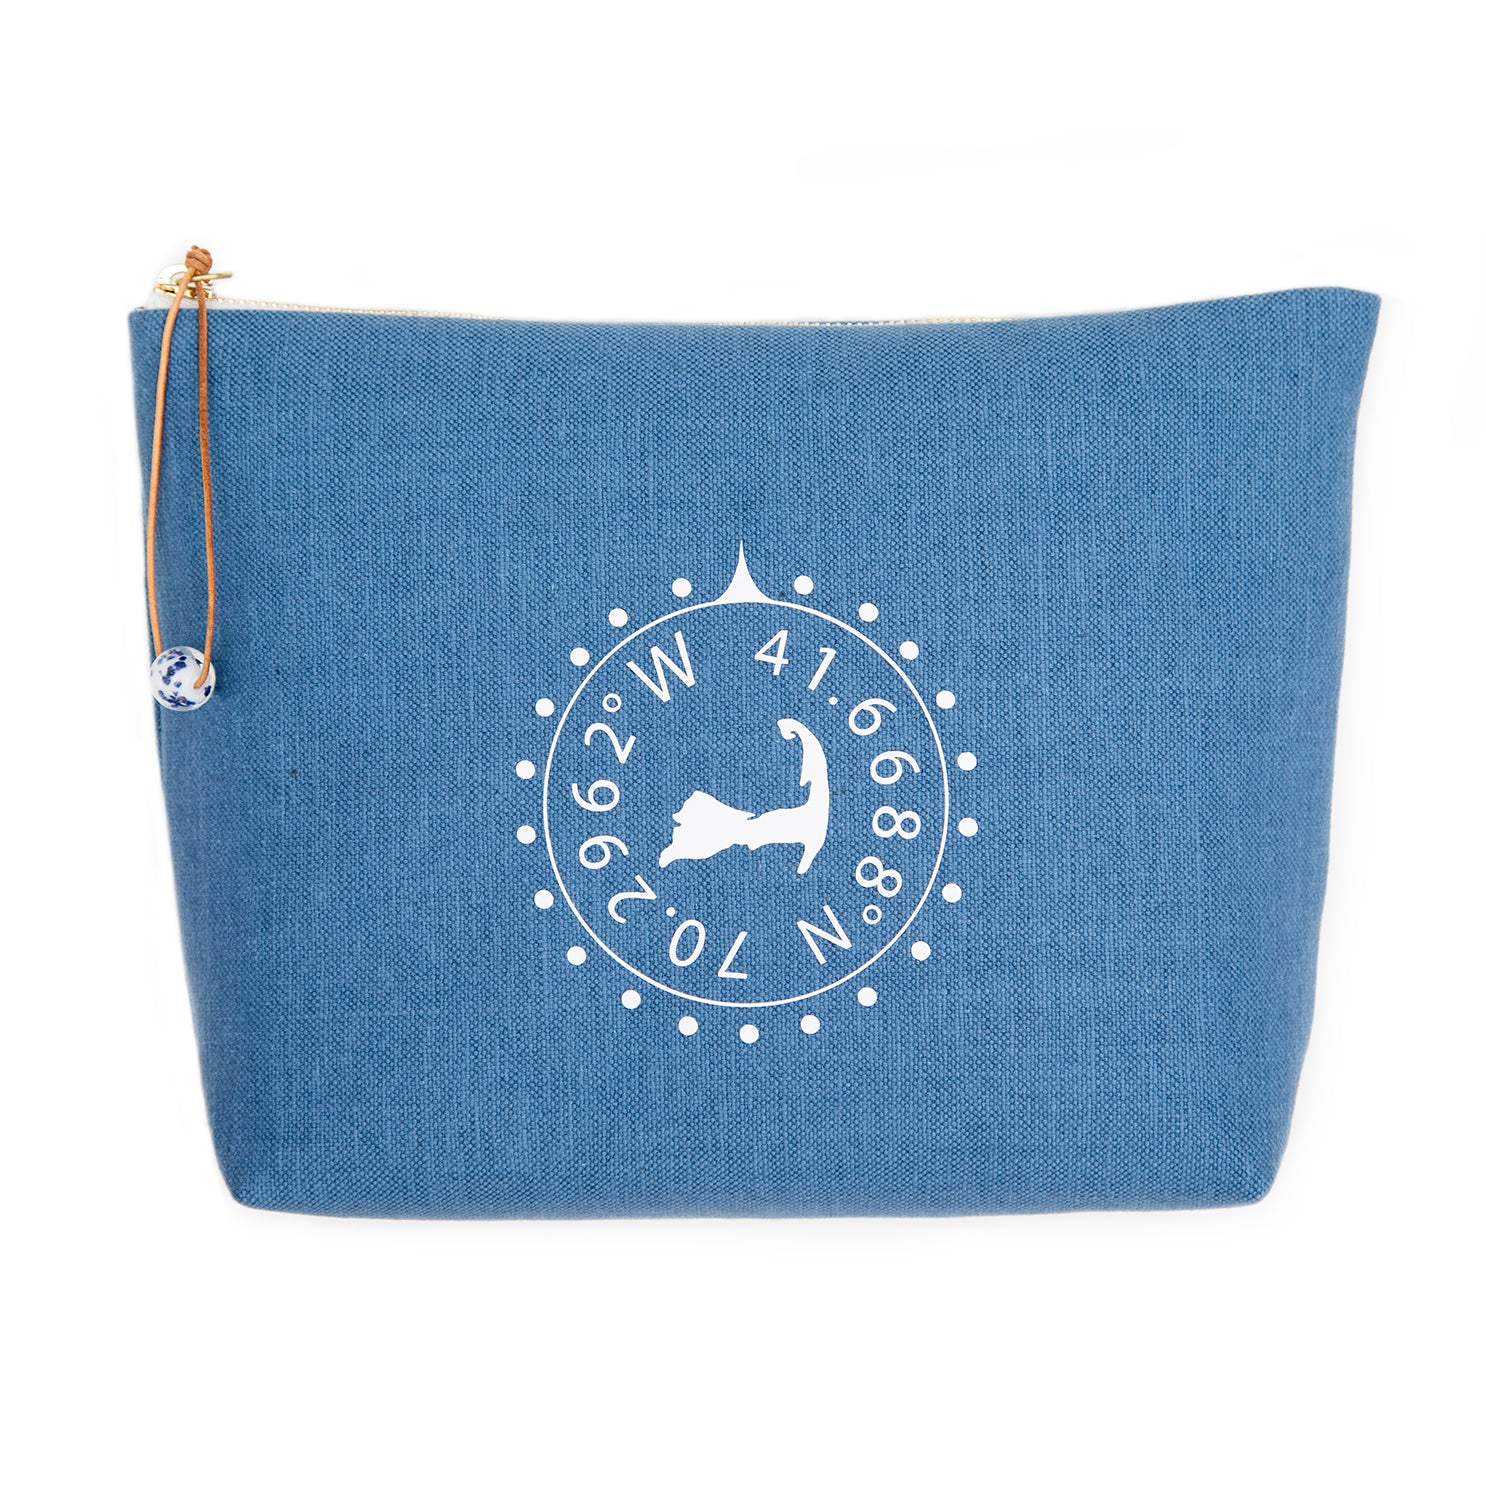 Cape Cod Travel Pouch